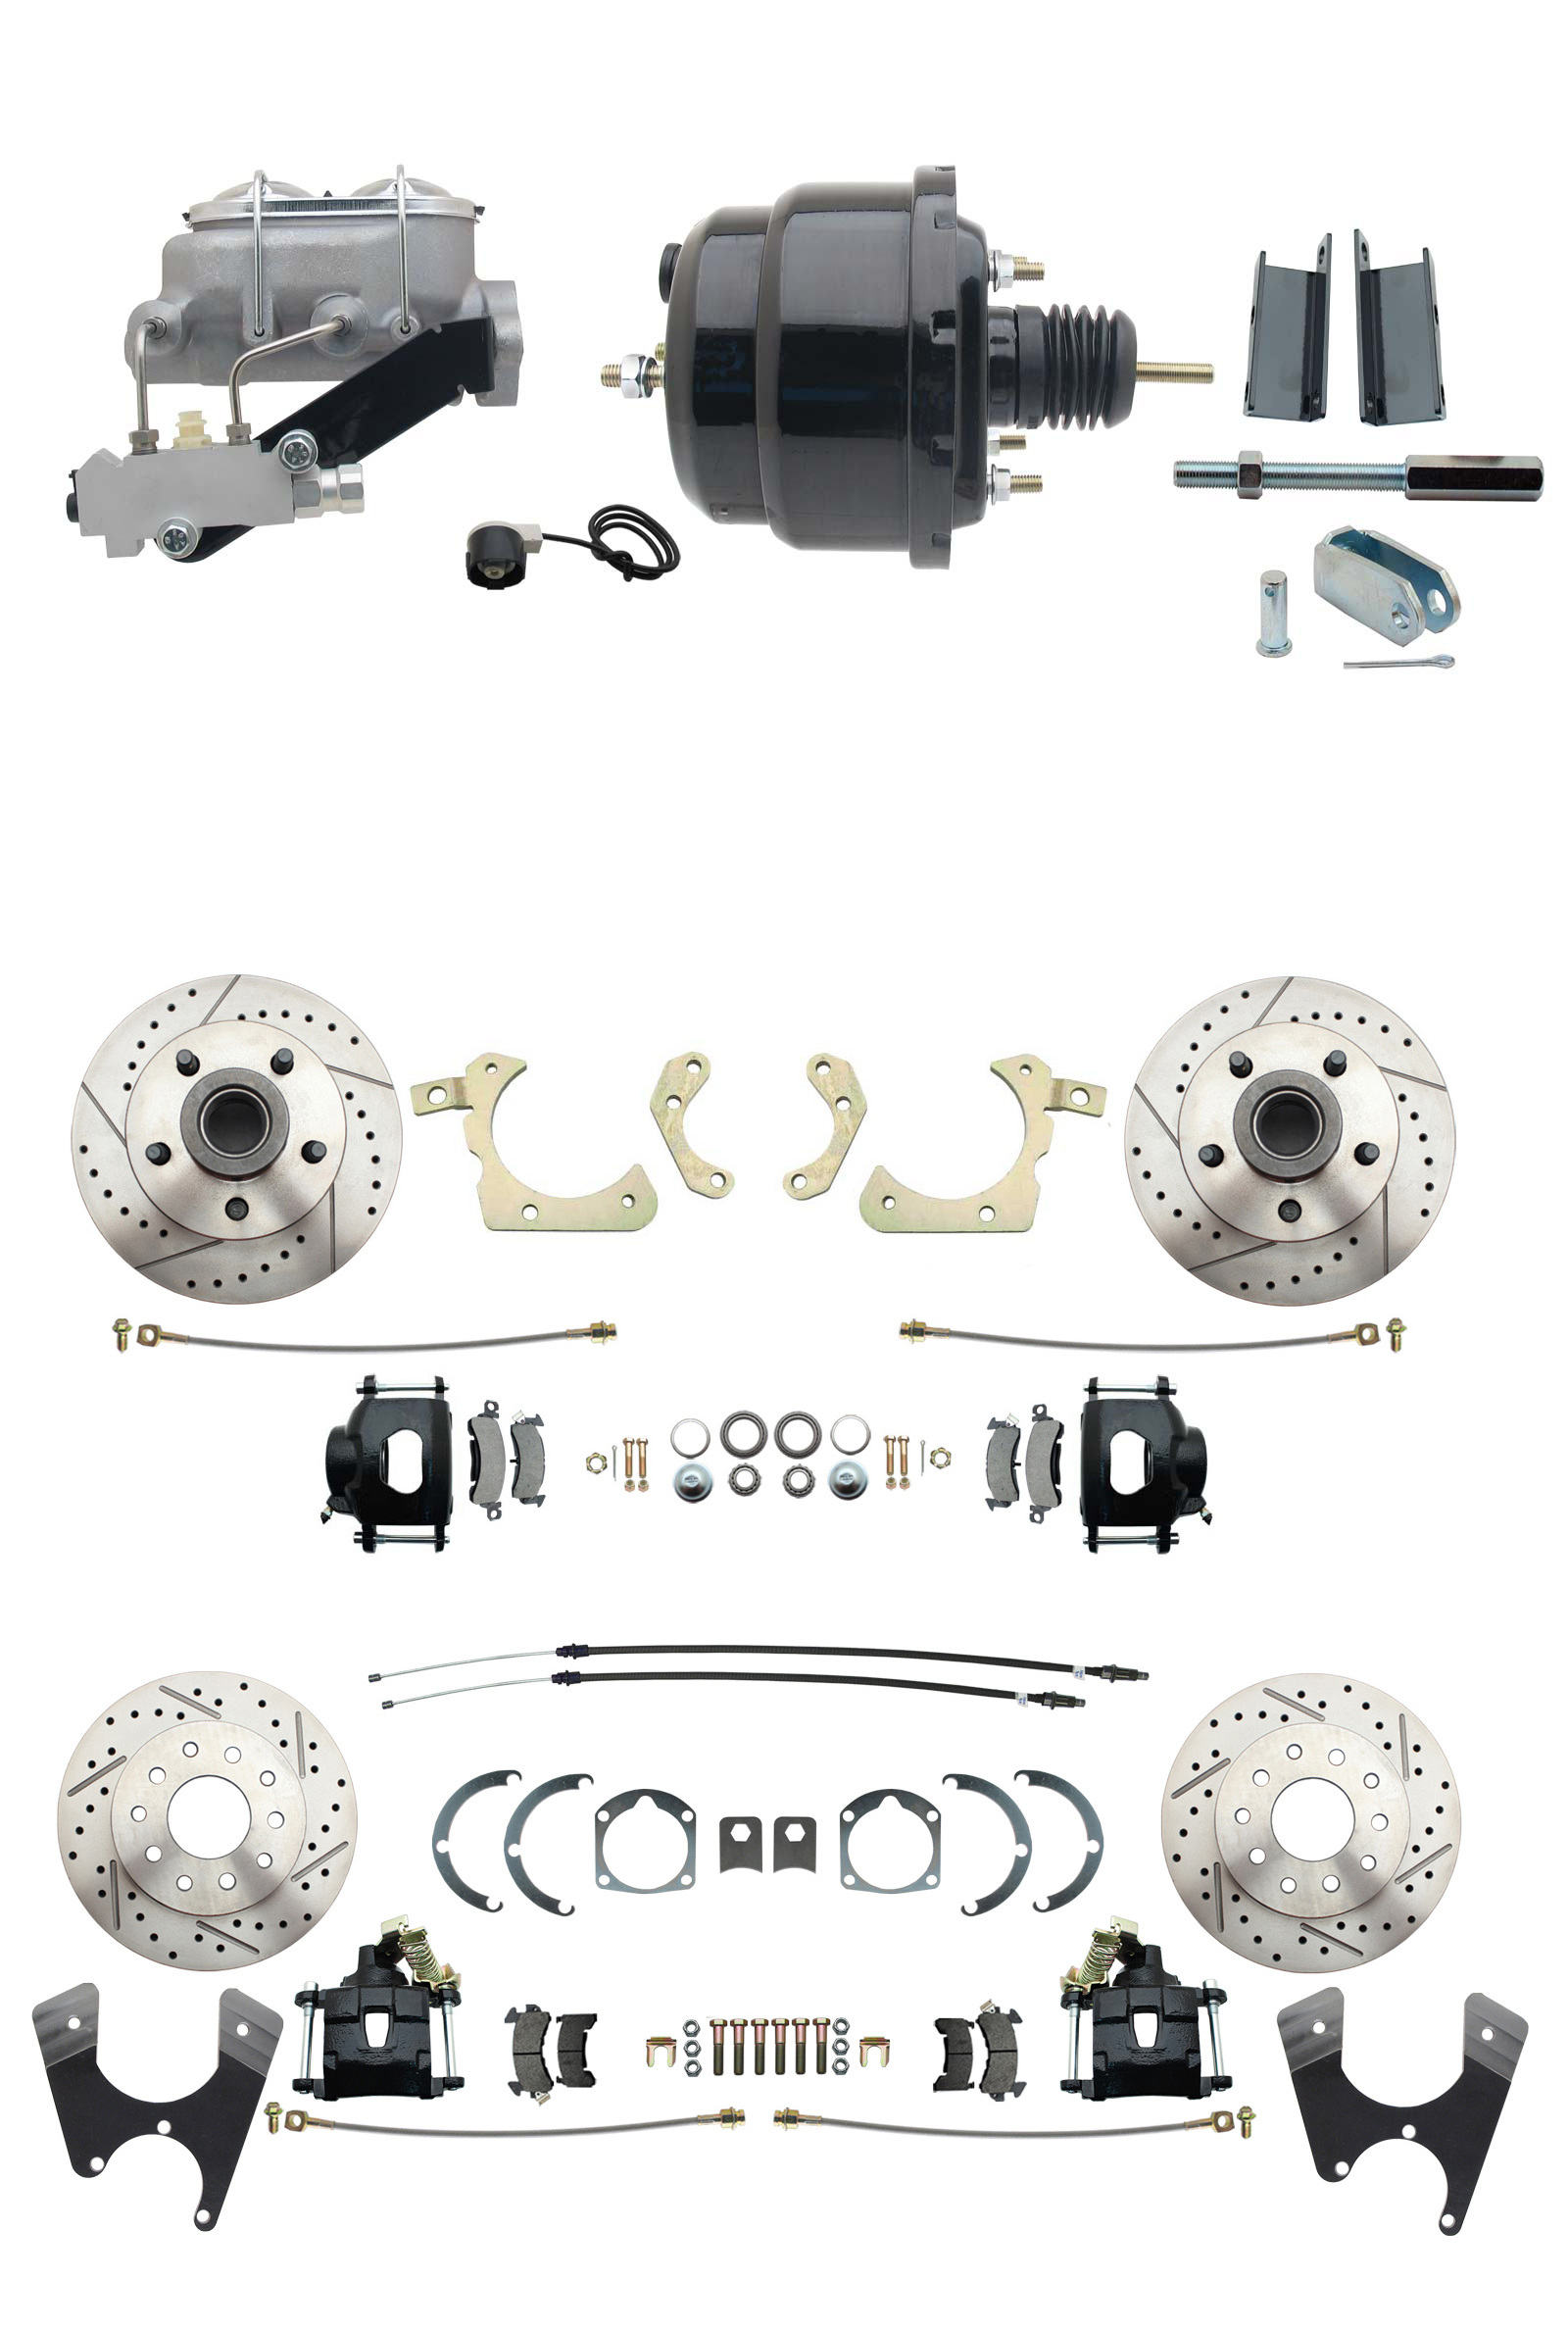 1955-1958 GM Full Size Front & Rear Power Disc Brake Kit Black Powder Coated Calipers Drilled/Slotted Rotors (Impala, Bel Air, Biscayne) & 8 Dual Powder Coated Black Booster Conversion Kit W/ Aluminum Master Cylinder Le